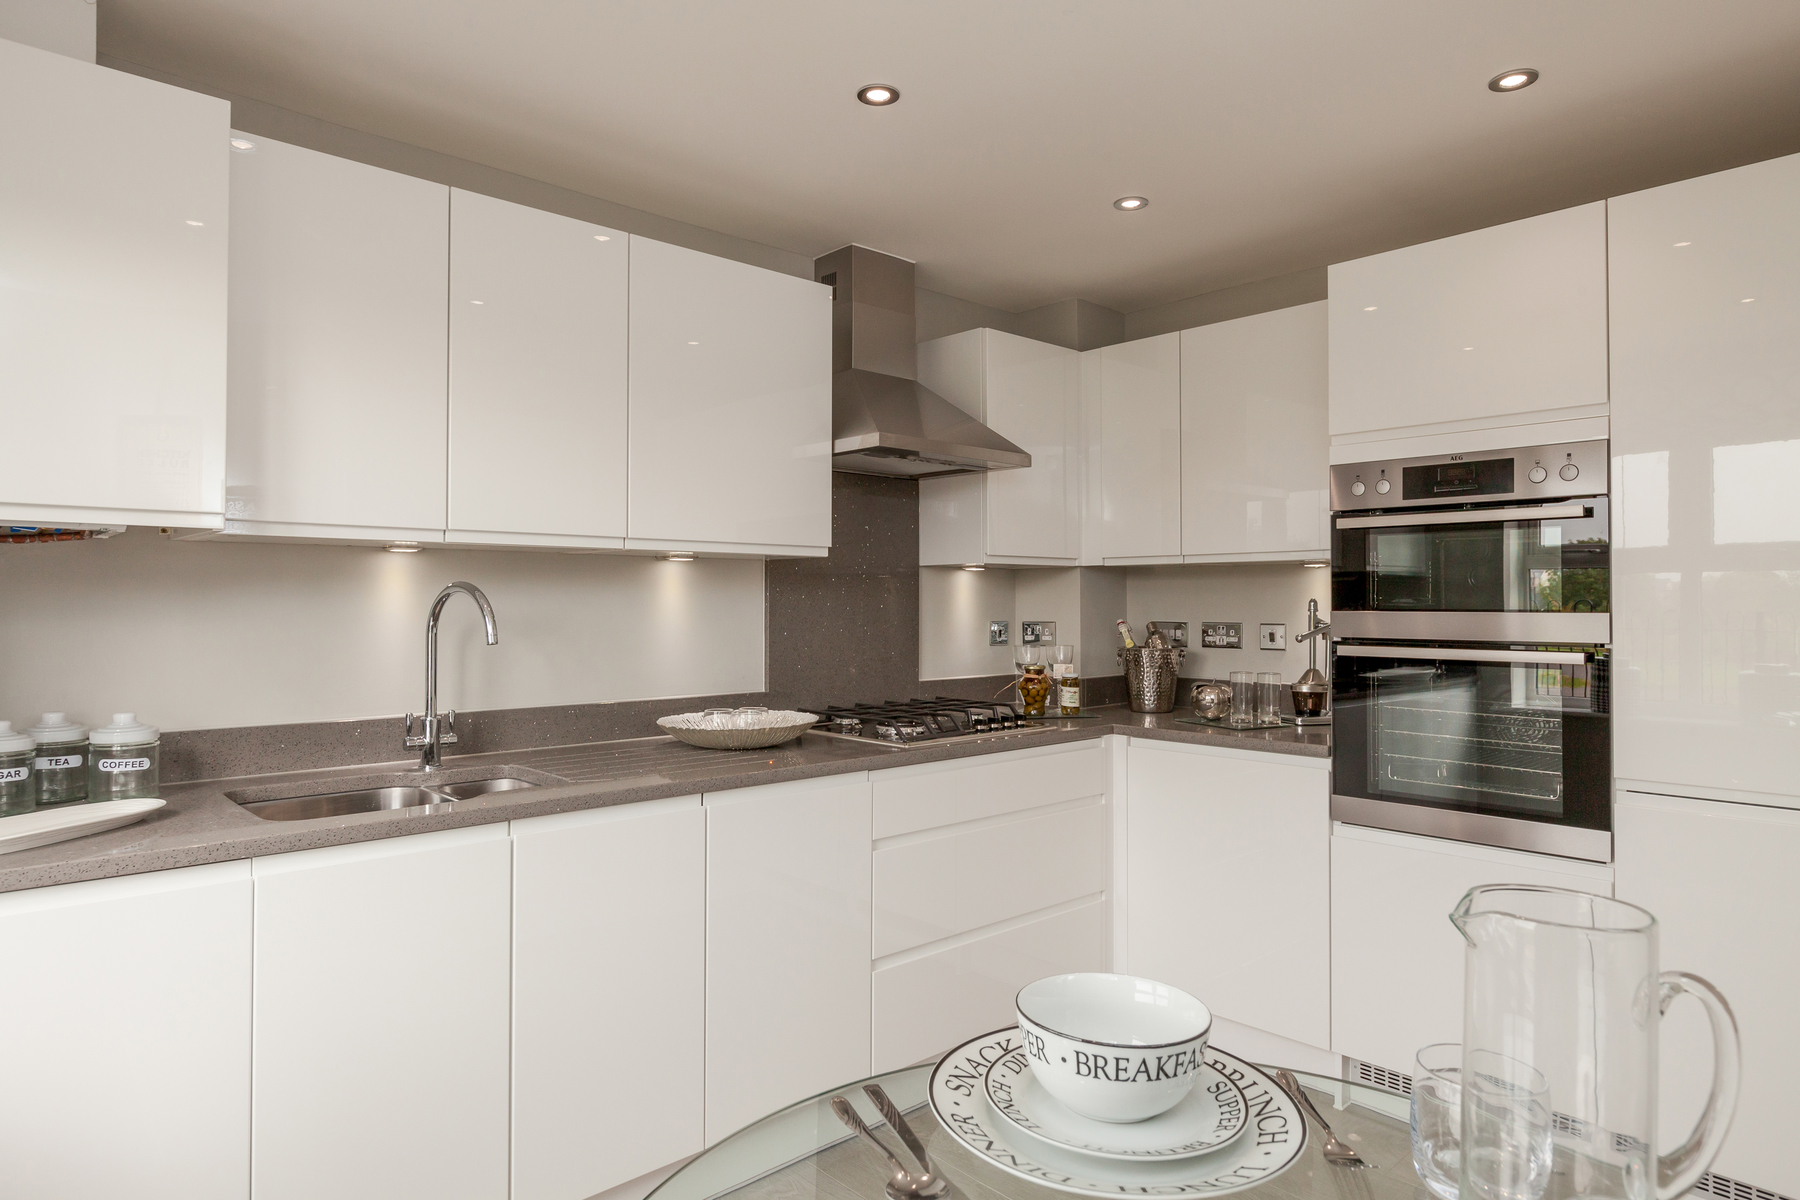 TW Exeter - Plumb Park - Withycombe example kitchen